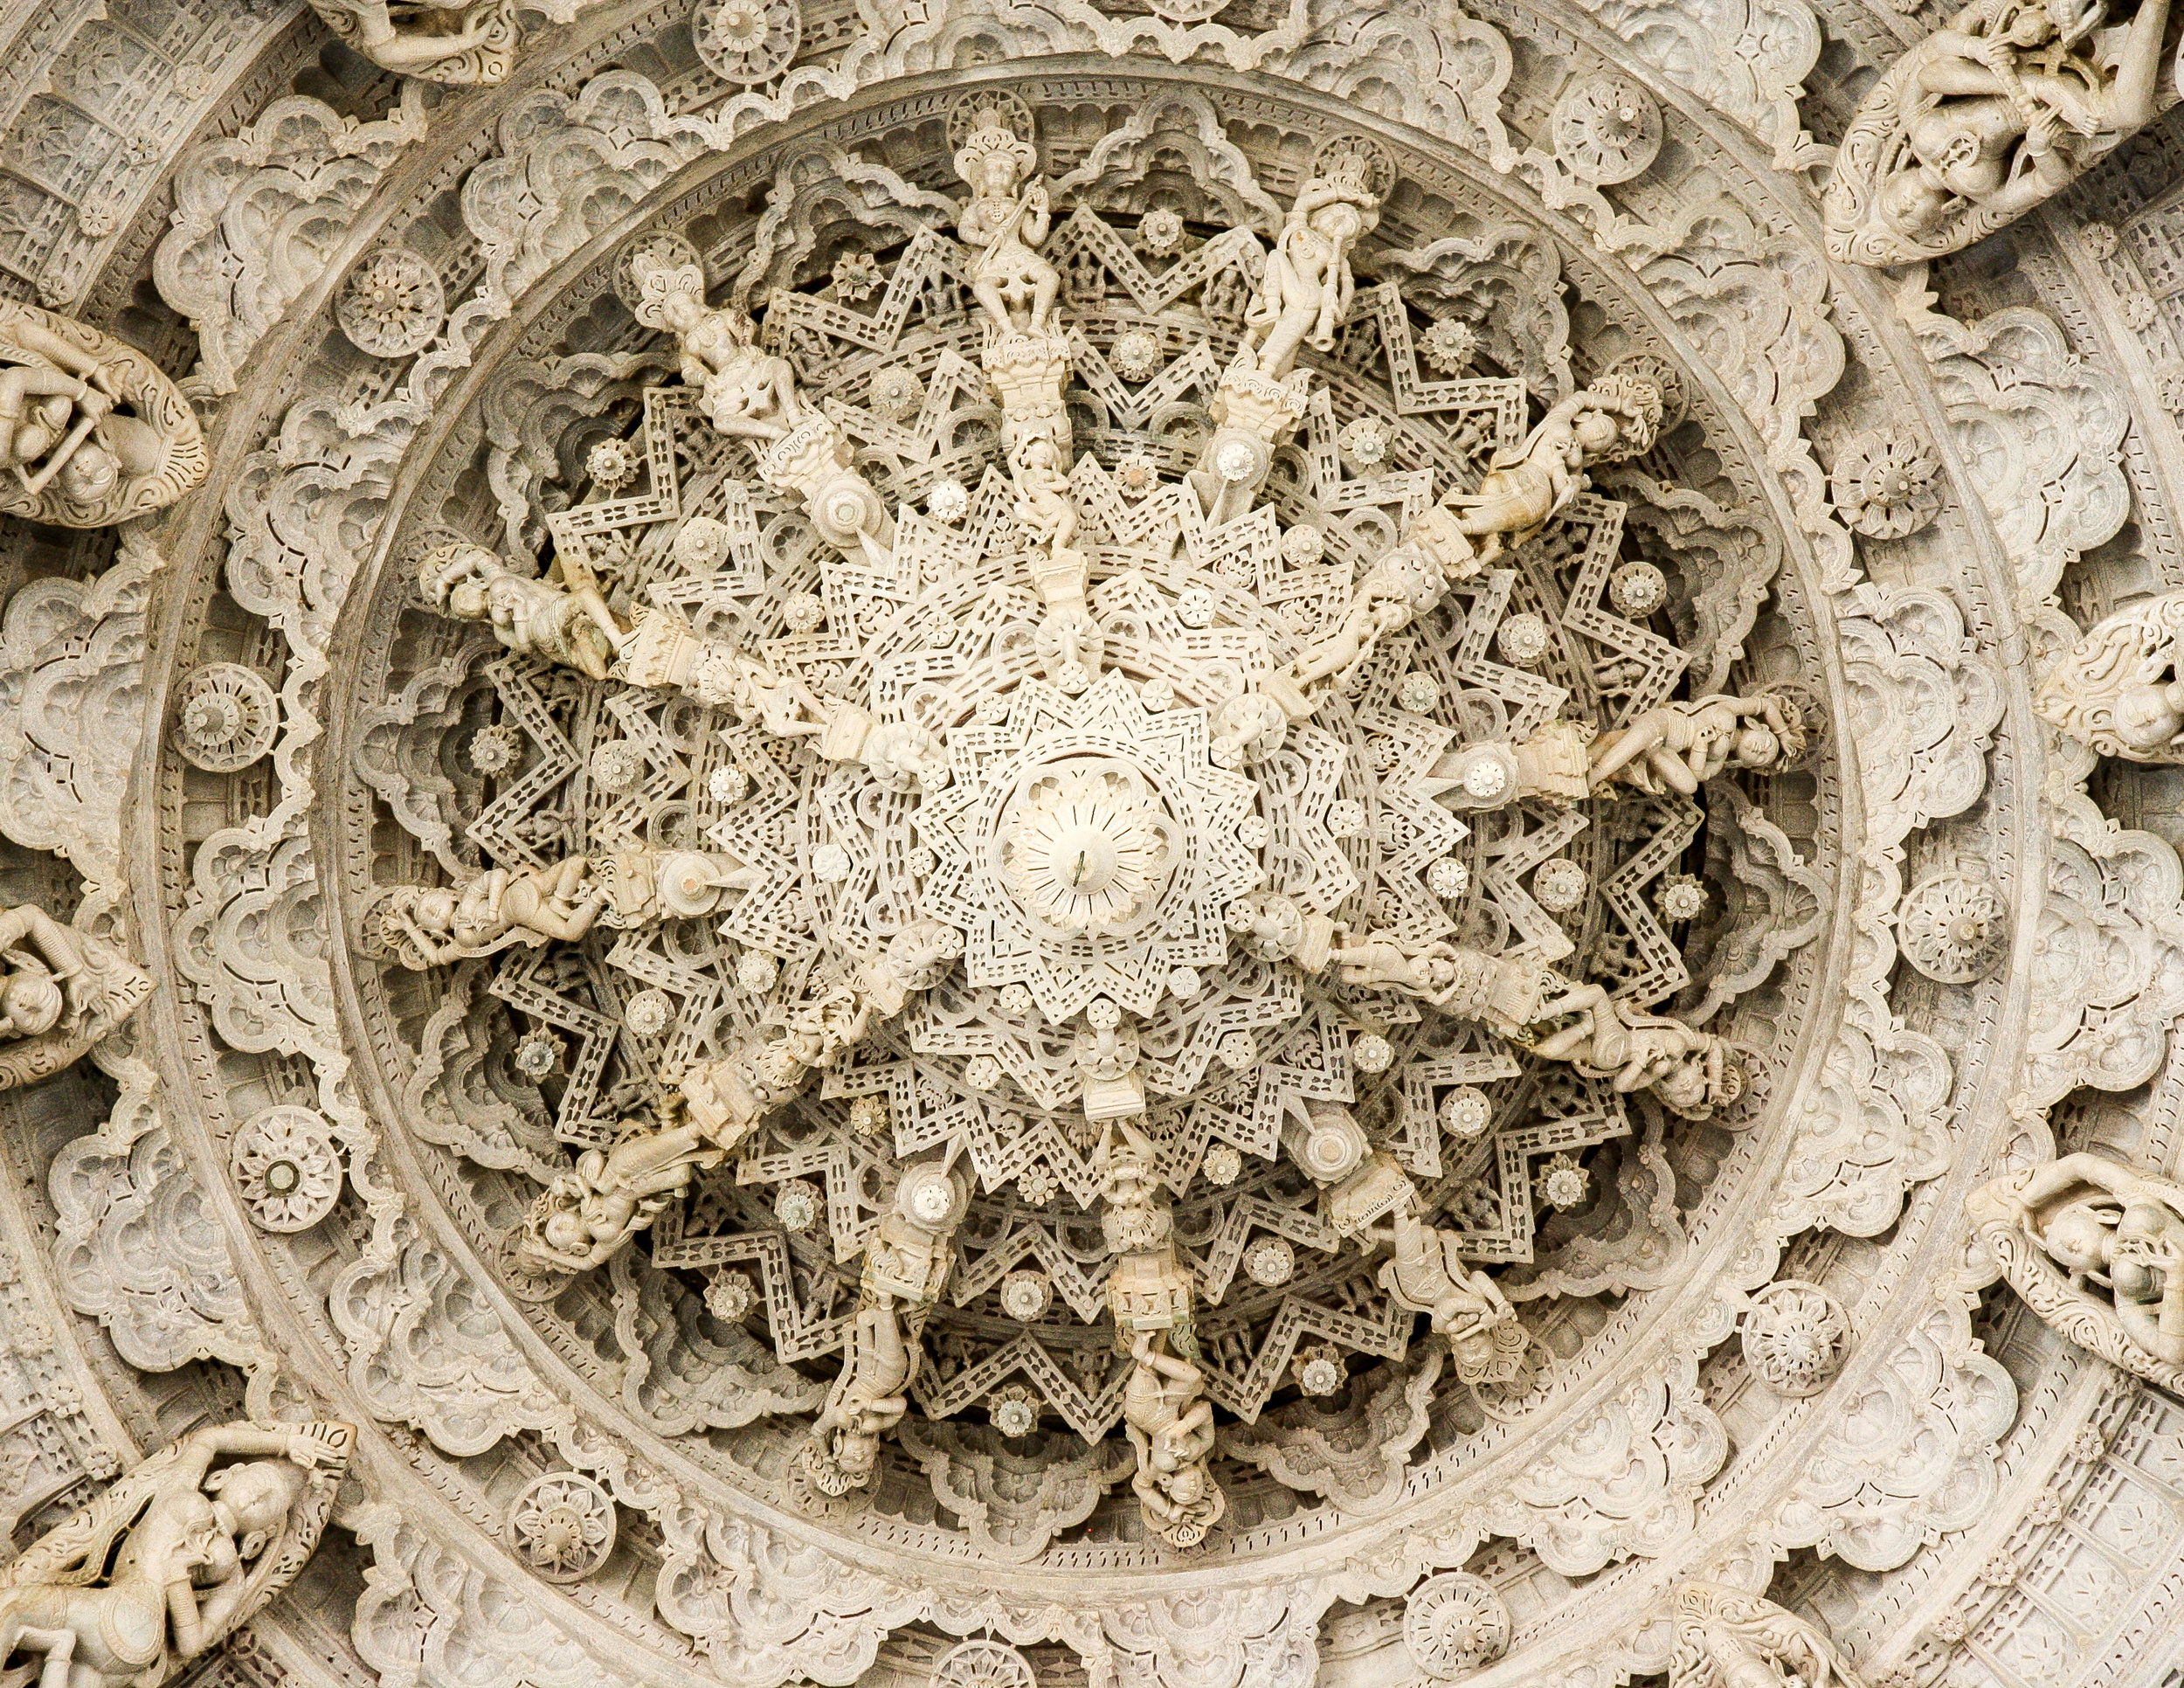 Places to visit in Rajasthan: The carvings at Ranakpur